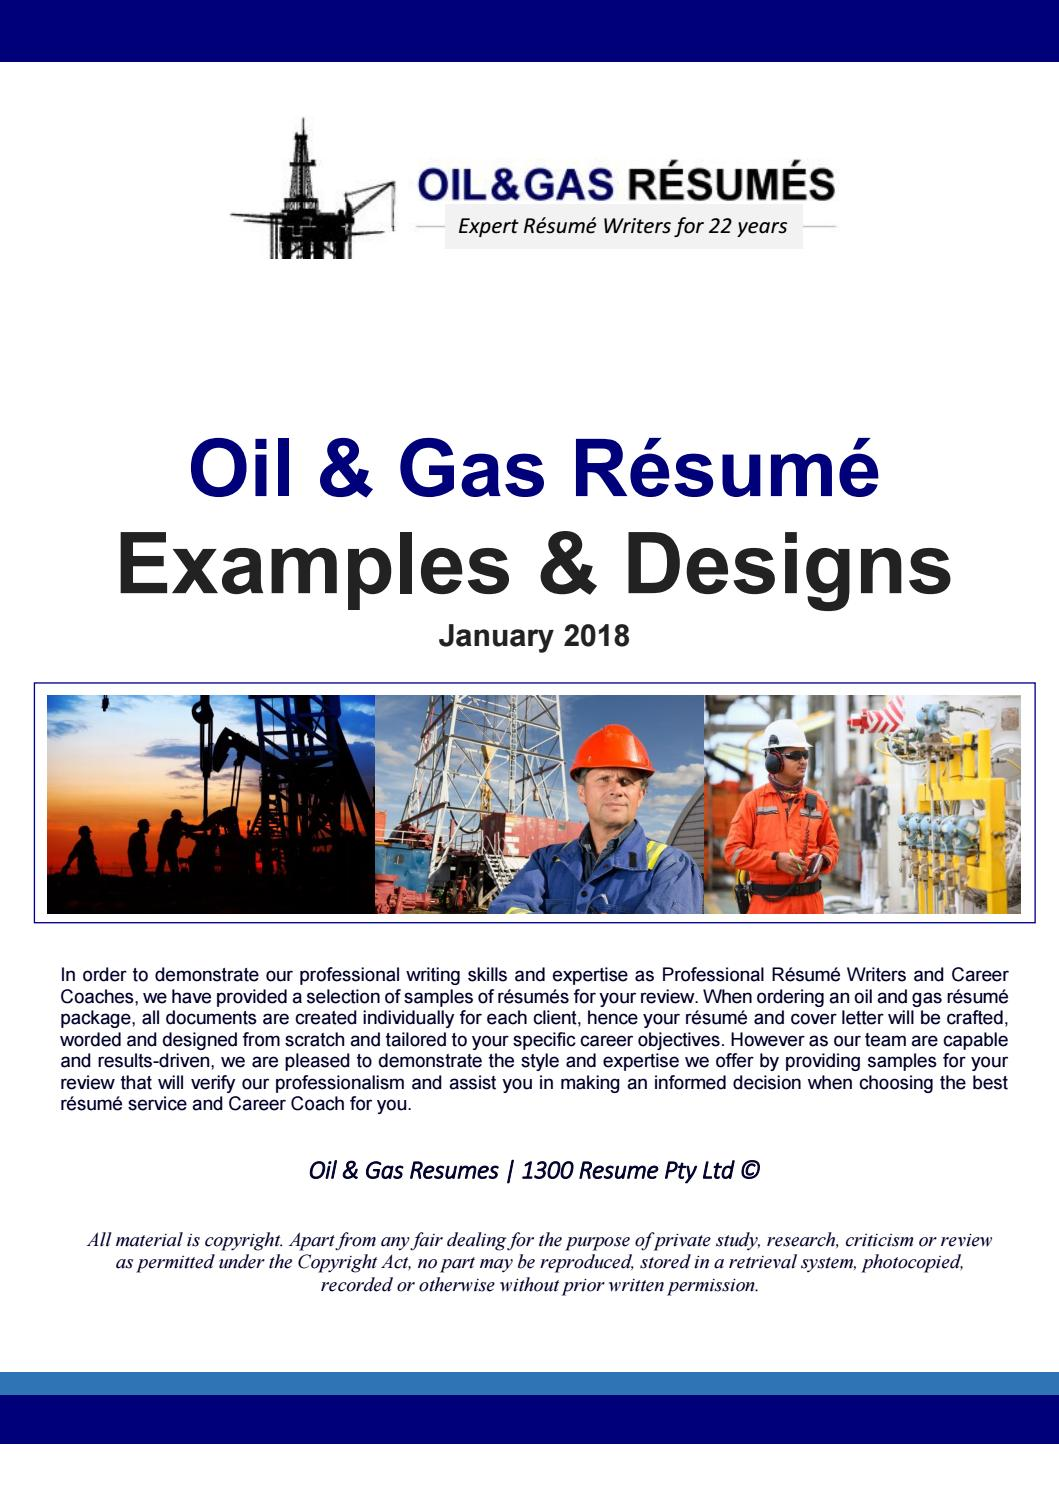 2018 oil and gas resume samples by 1300 resume